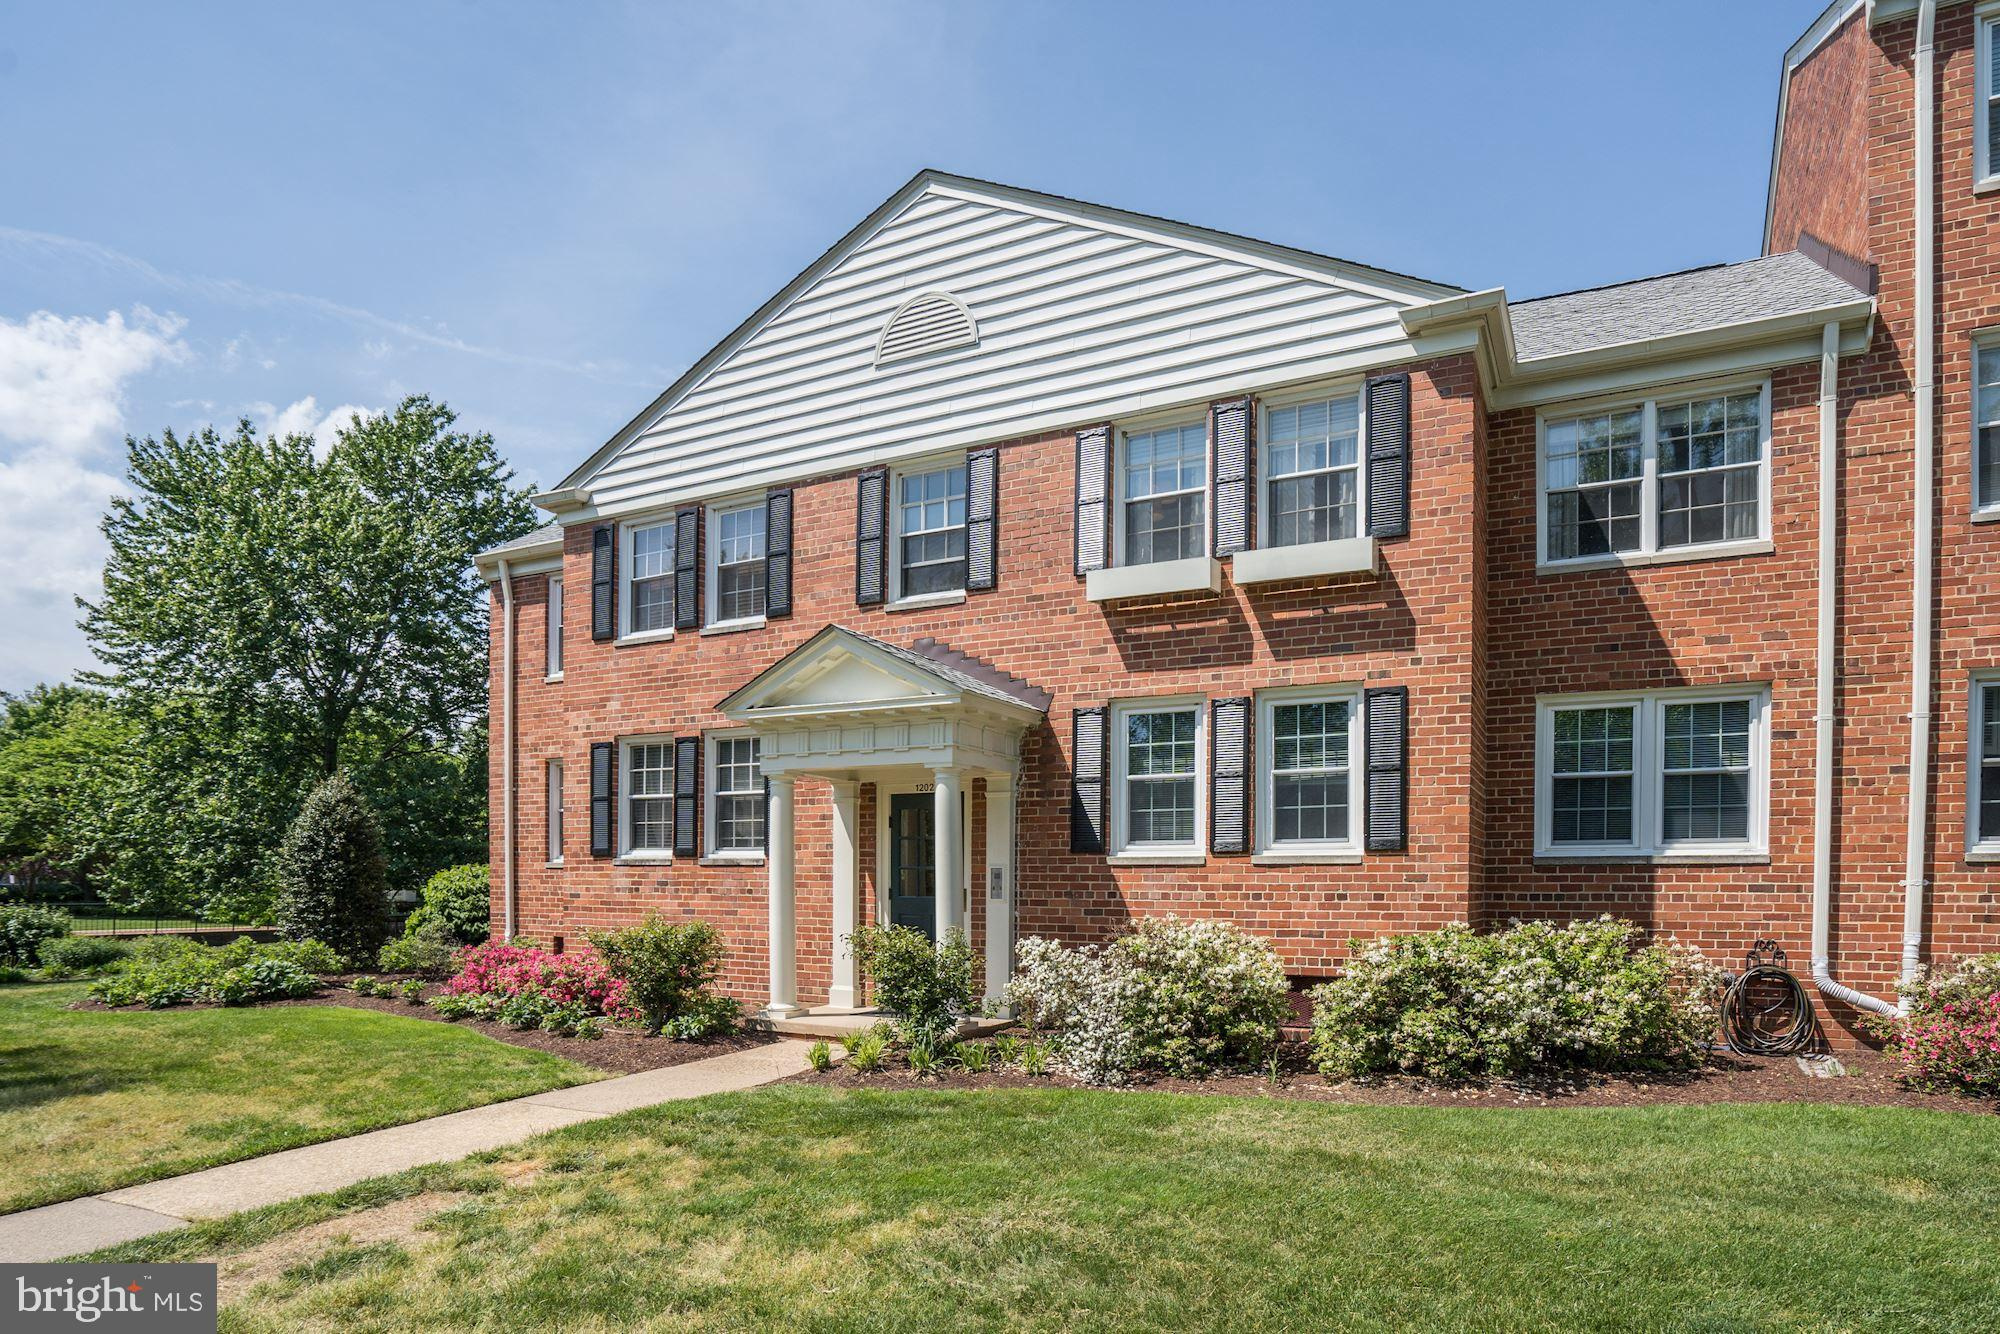 Beautifully updated top floor unit. The kitchen features marble countertops, new cabinets, stainless steel appliances, oversized undermount sink and engineered hardwood floors. New kitchen and floors throughout were completed between 2018-2019. New HVAC System was installed in 2017. Laundry is in the same building and large extra storage area as well. Contact Patrick DeLeonibus for all inquiries, 202.770.7401 or pdeleonibus@ttrsir.com